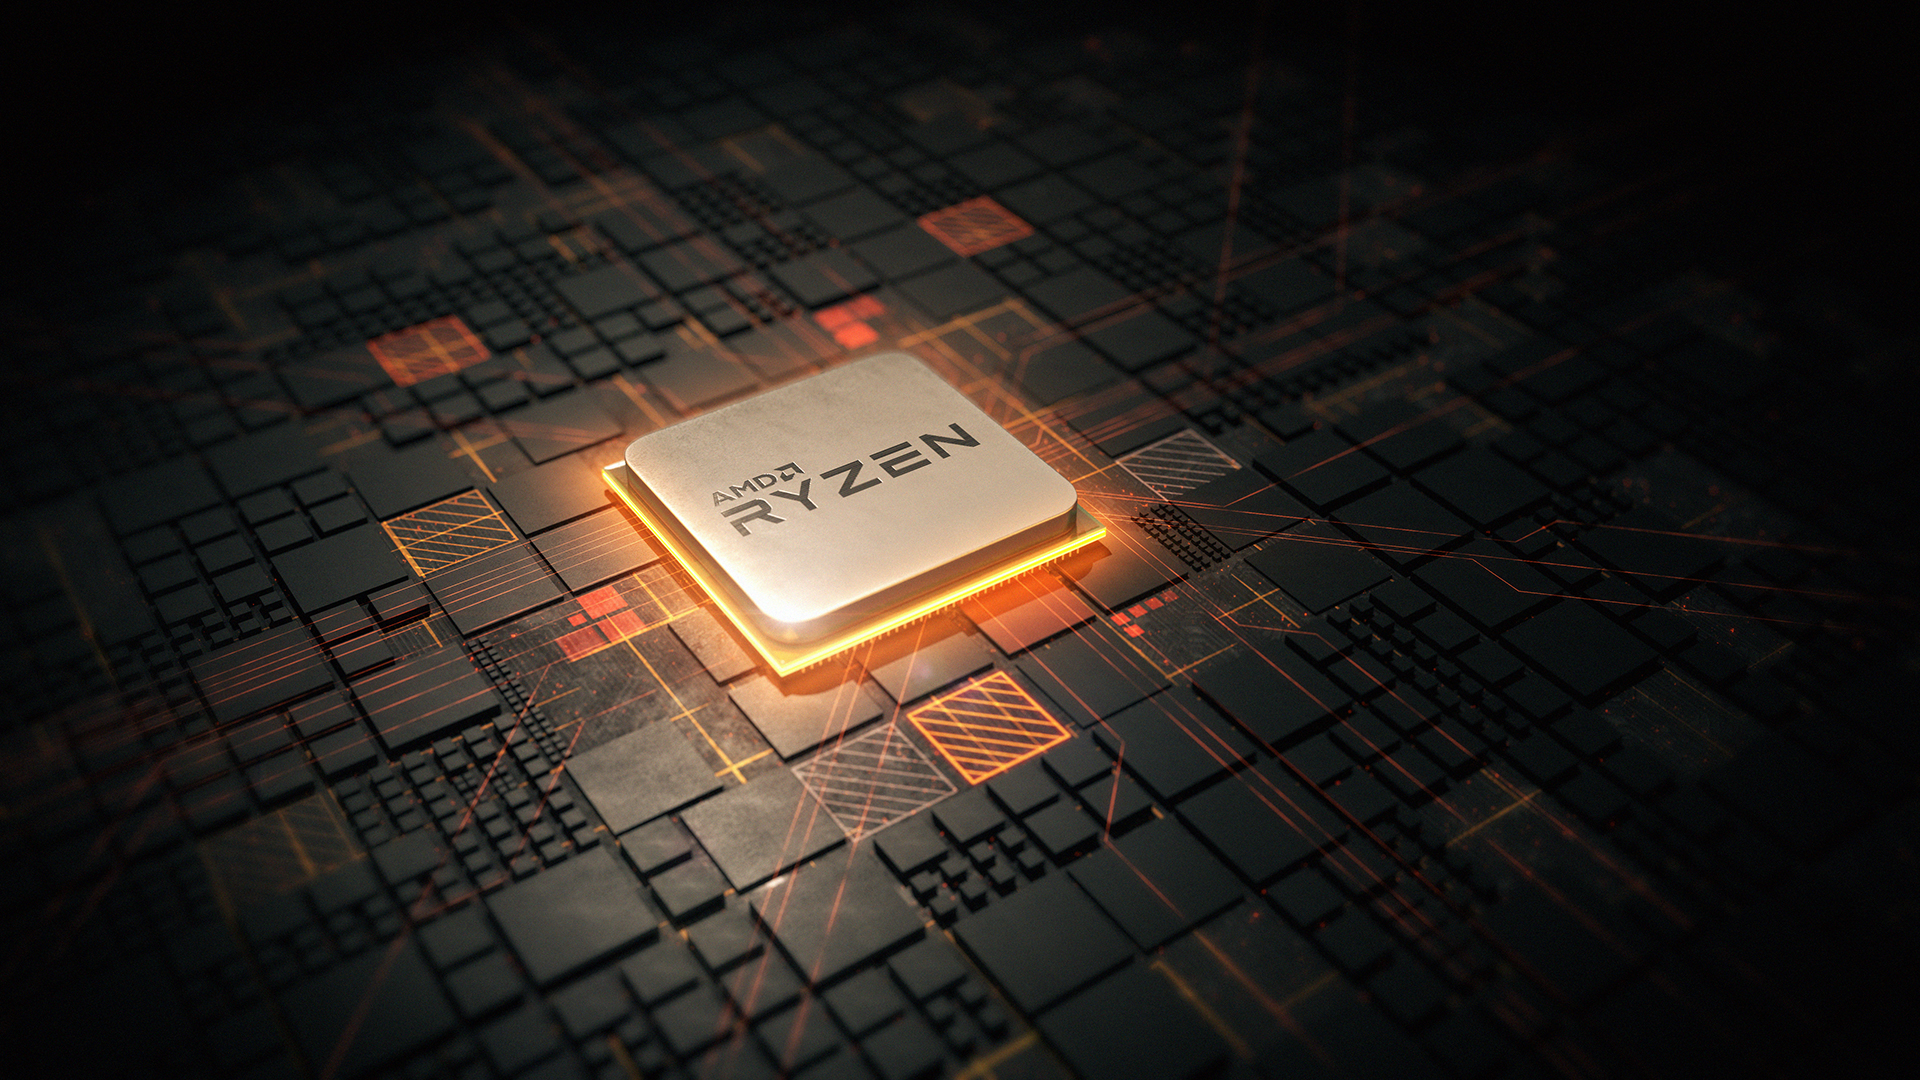 Catch-up to Qualcomm: how close are Intel and AMD to 7nm processors?